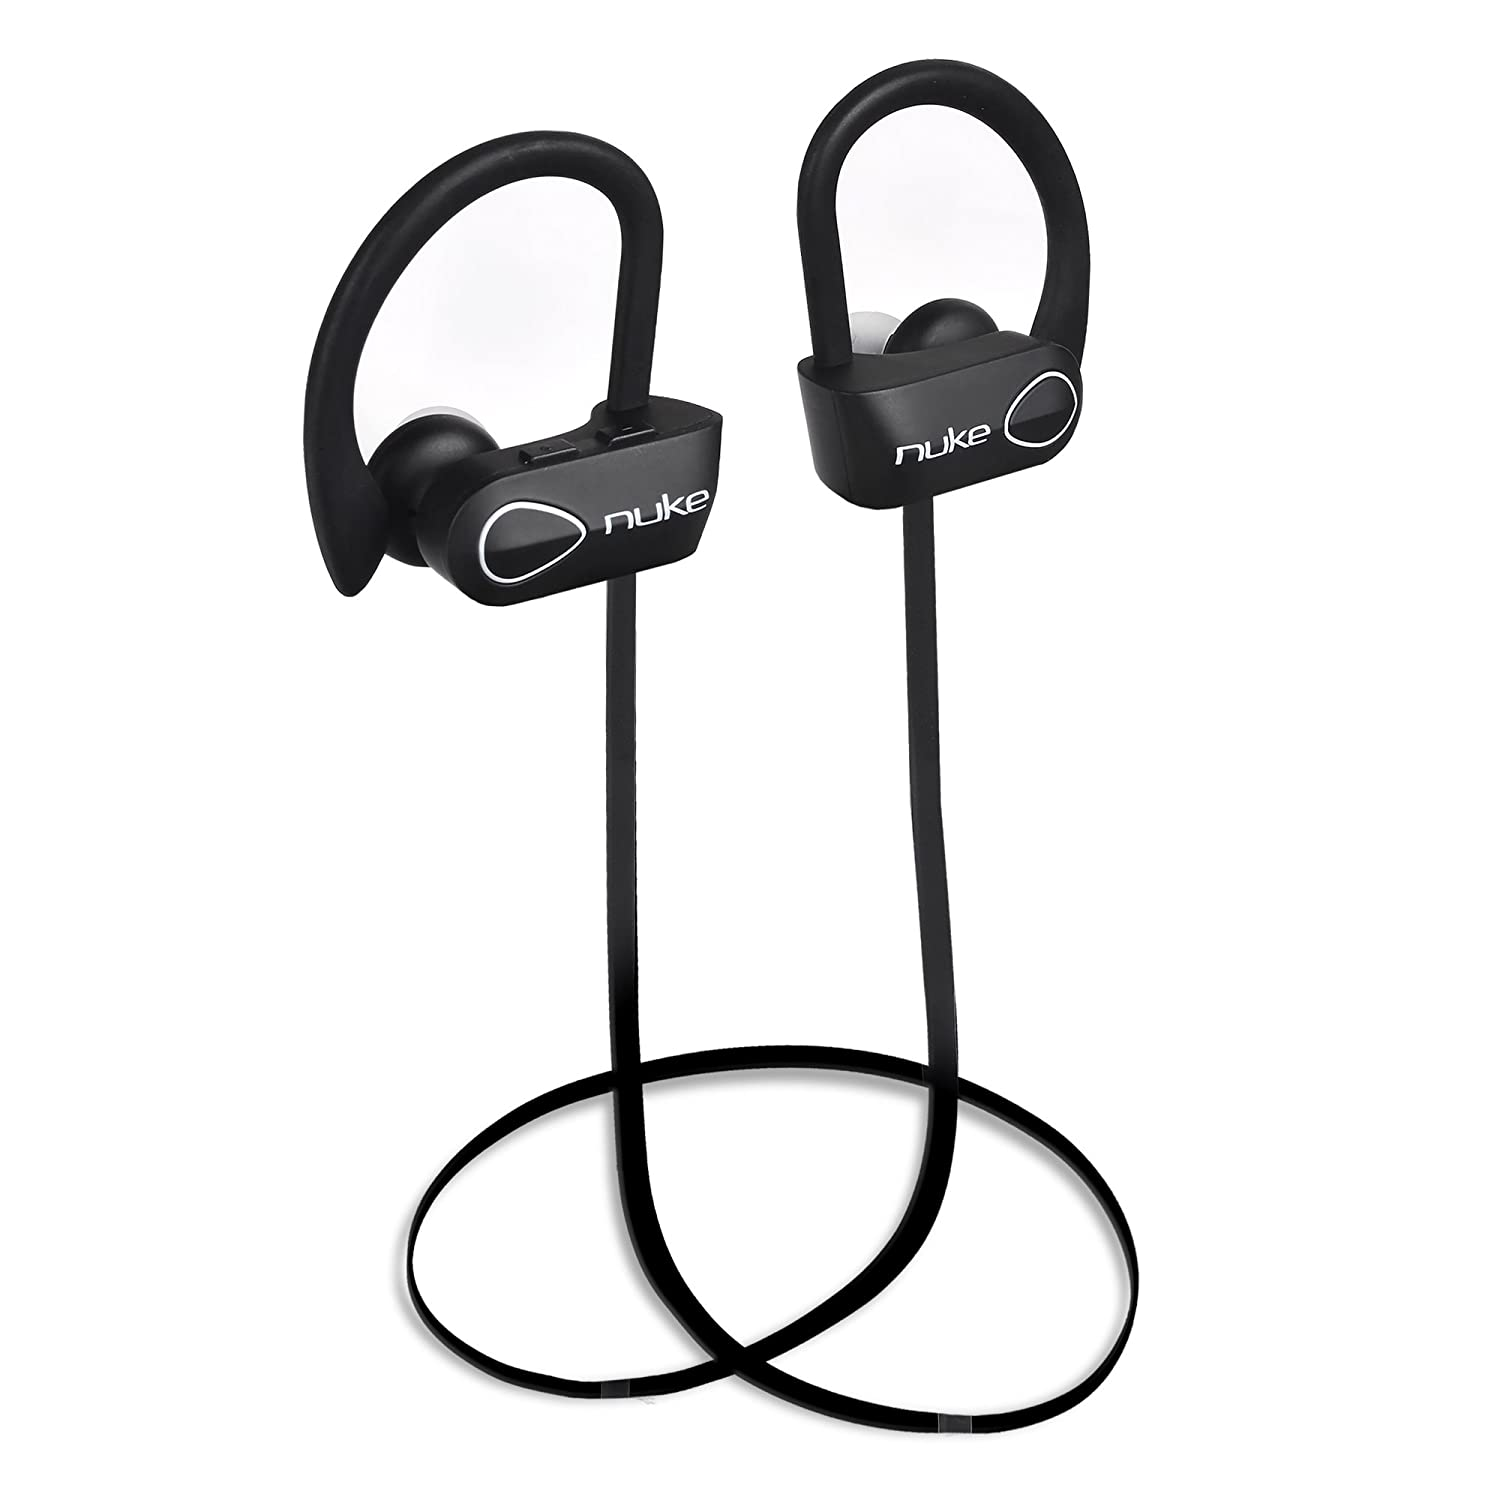 Bluetooth Wireless Headphones, Noise Cancelling Wireless Earbuds, Bluetooth Headset with Microphone IPX7 for Sports Gym Workout, Waterproof, Sweatproof HD Stereo Over-Ear Bluetooth Headphones – Nuke